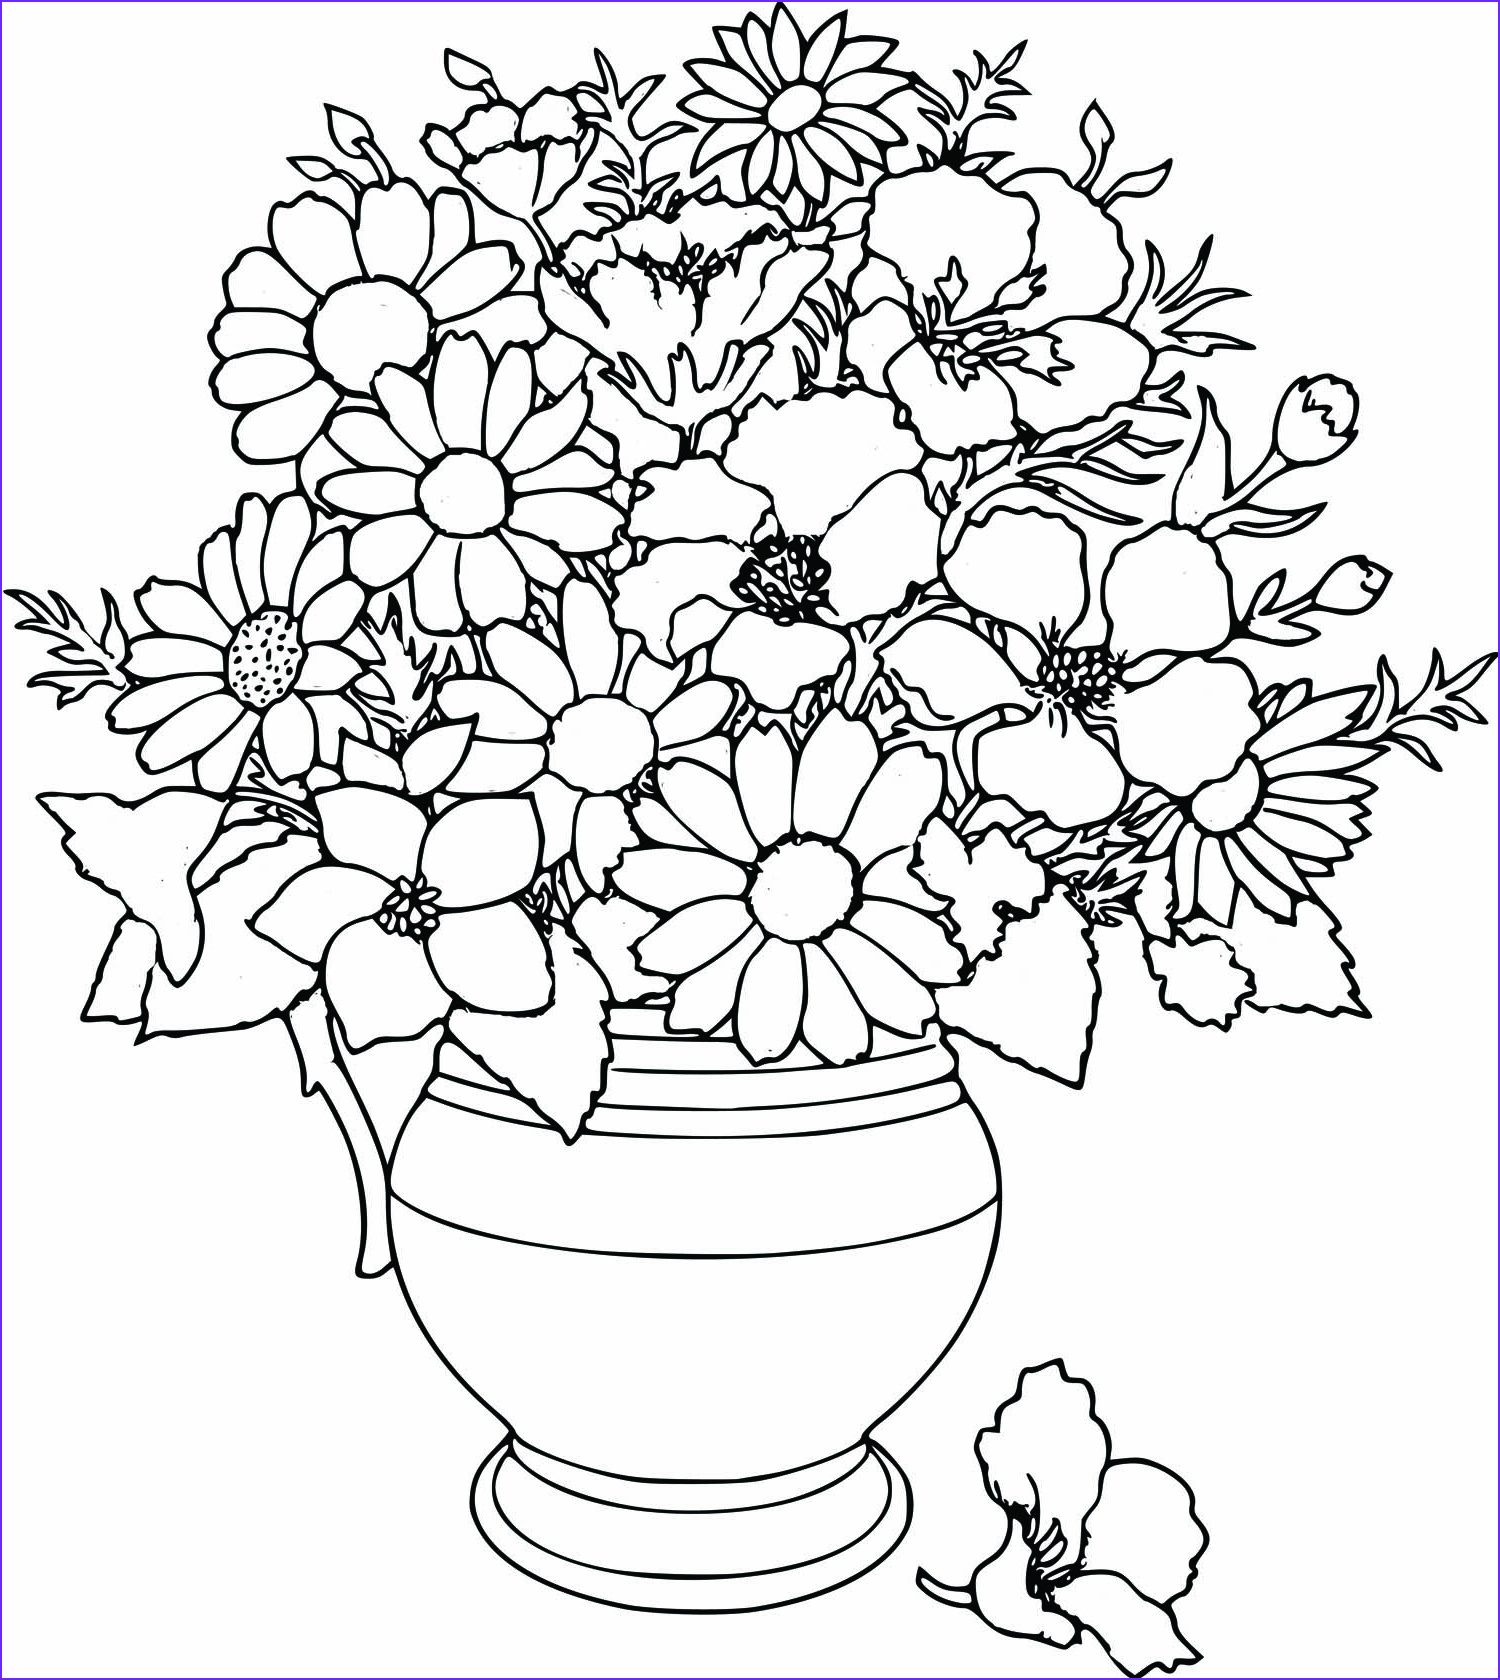 Free Coloring Pages for Adults Flowers Unique Photography La Petite Fleur